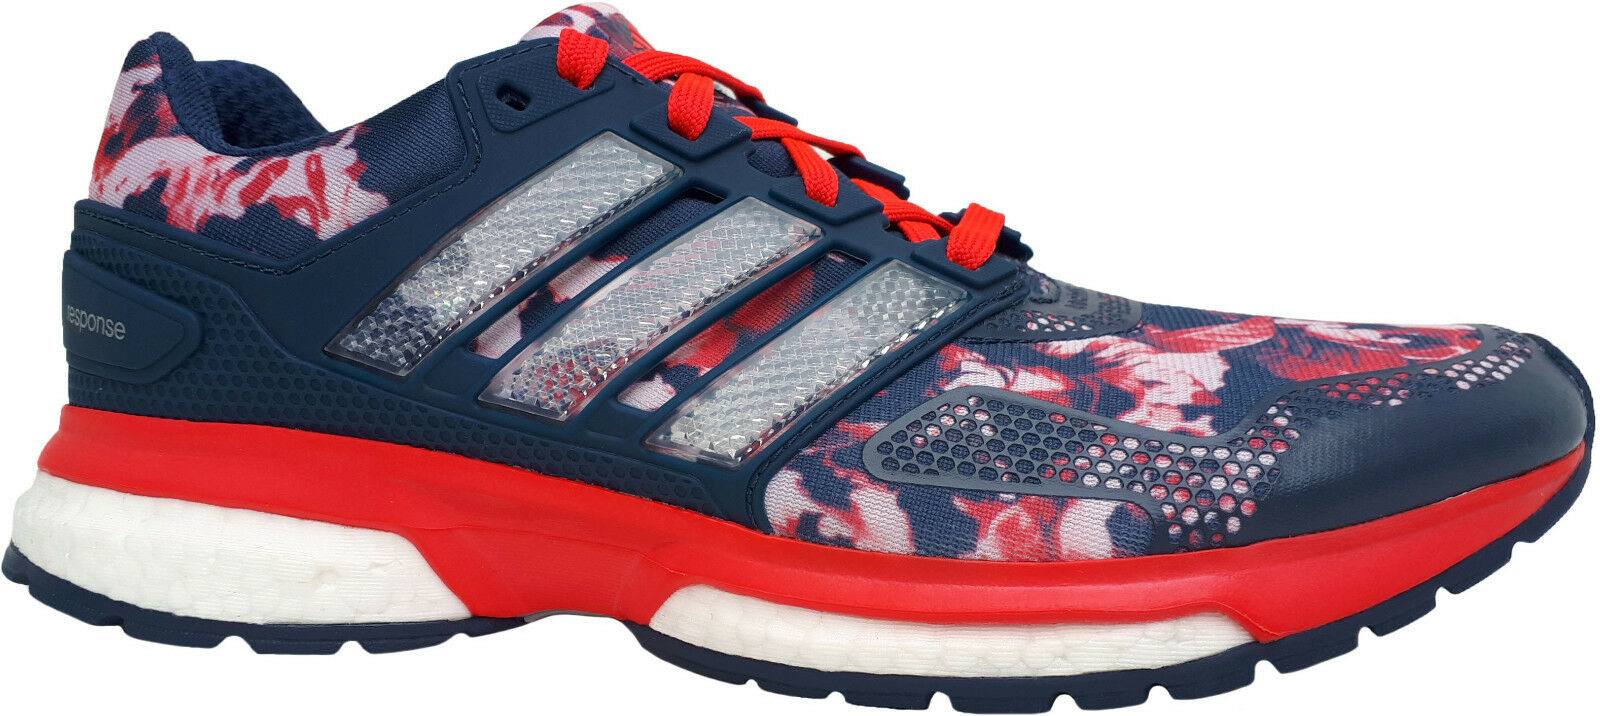 Adidas Responce 2 Graphic W zapatillas talla 38 Fitness 2/3 cortos deporte zapatos Fitness 38 1fbd7d